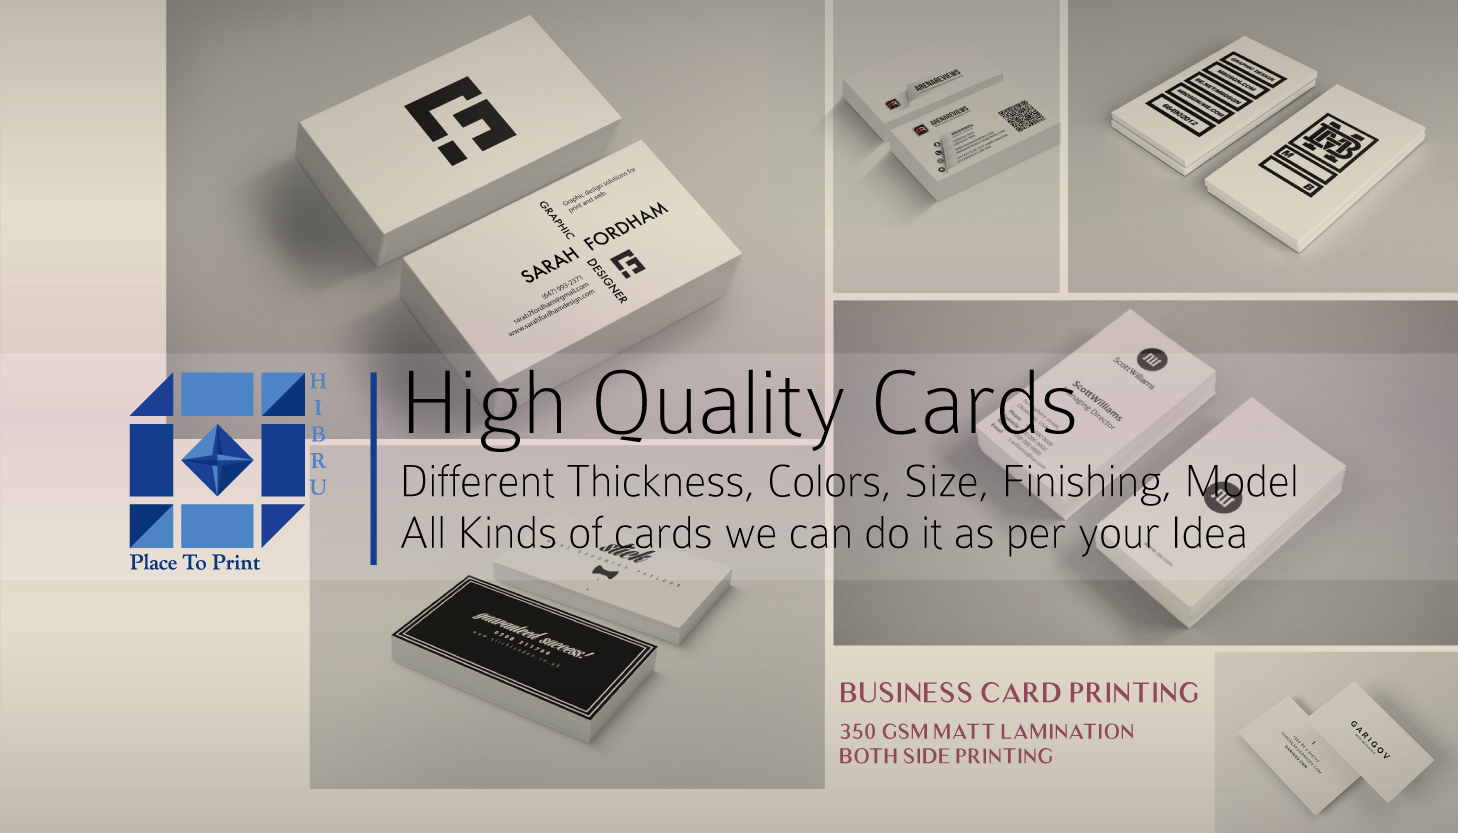 Business card printing best business cards business card template business card printing best business cards business card template business card printing cheap business cards visiting card reheart Image collections